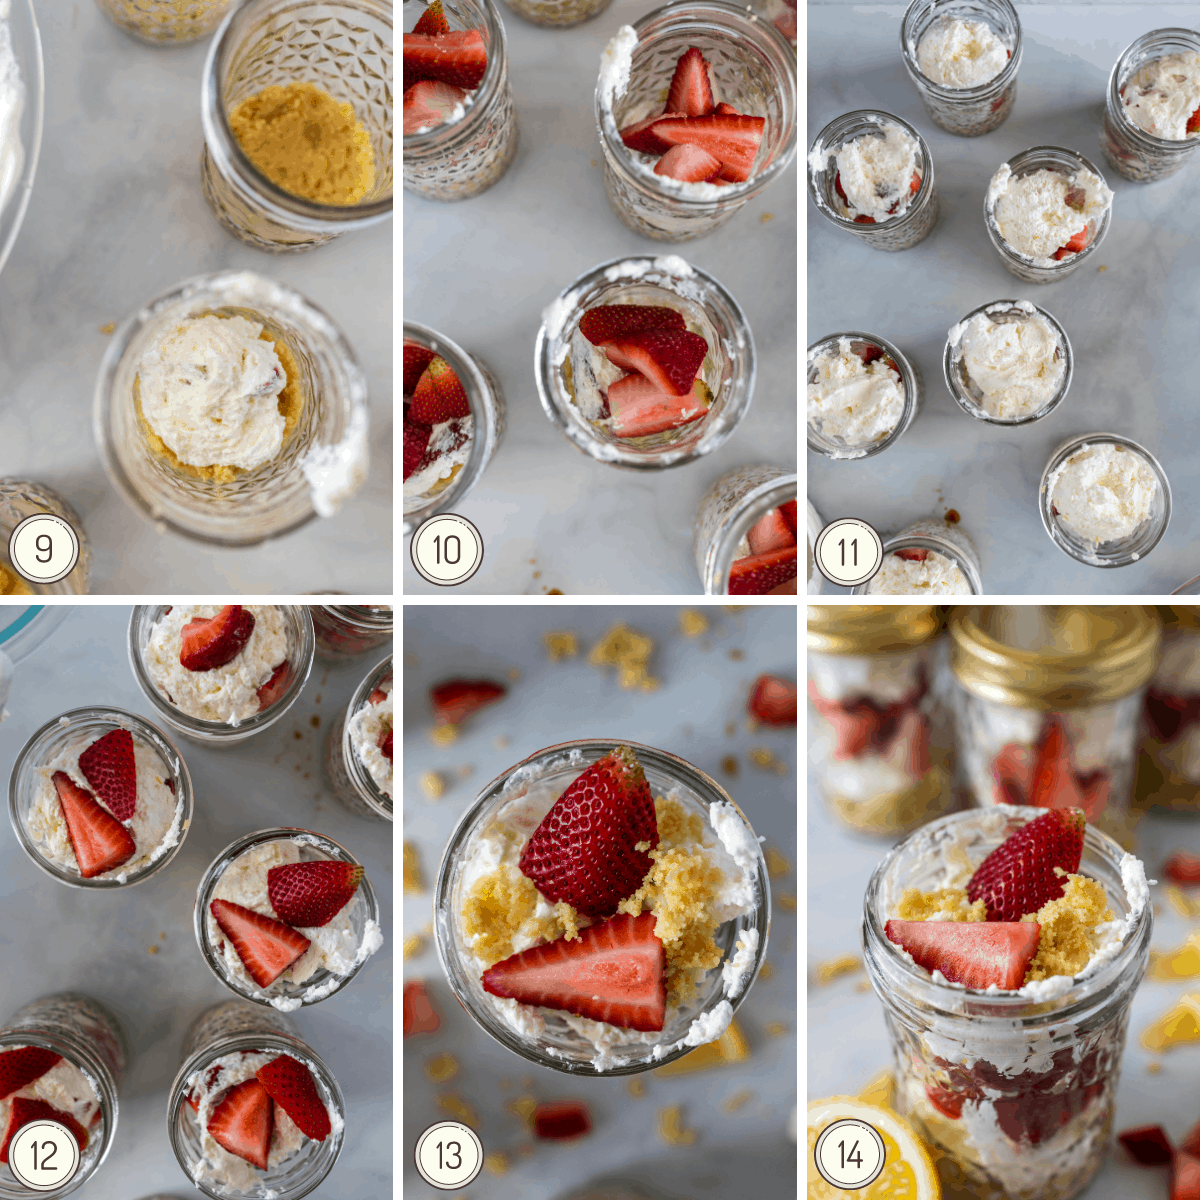 a second collage showing how to finish these layered no-bake strawberry cheesecake jars.